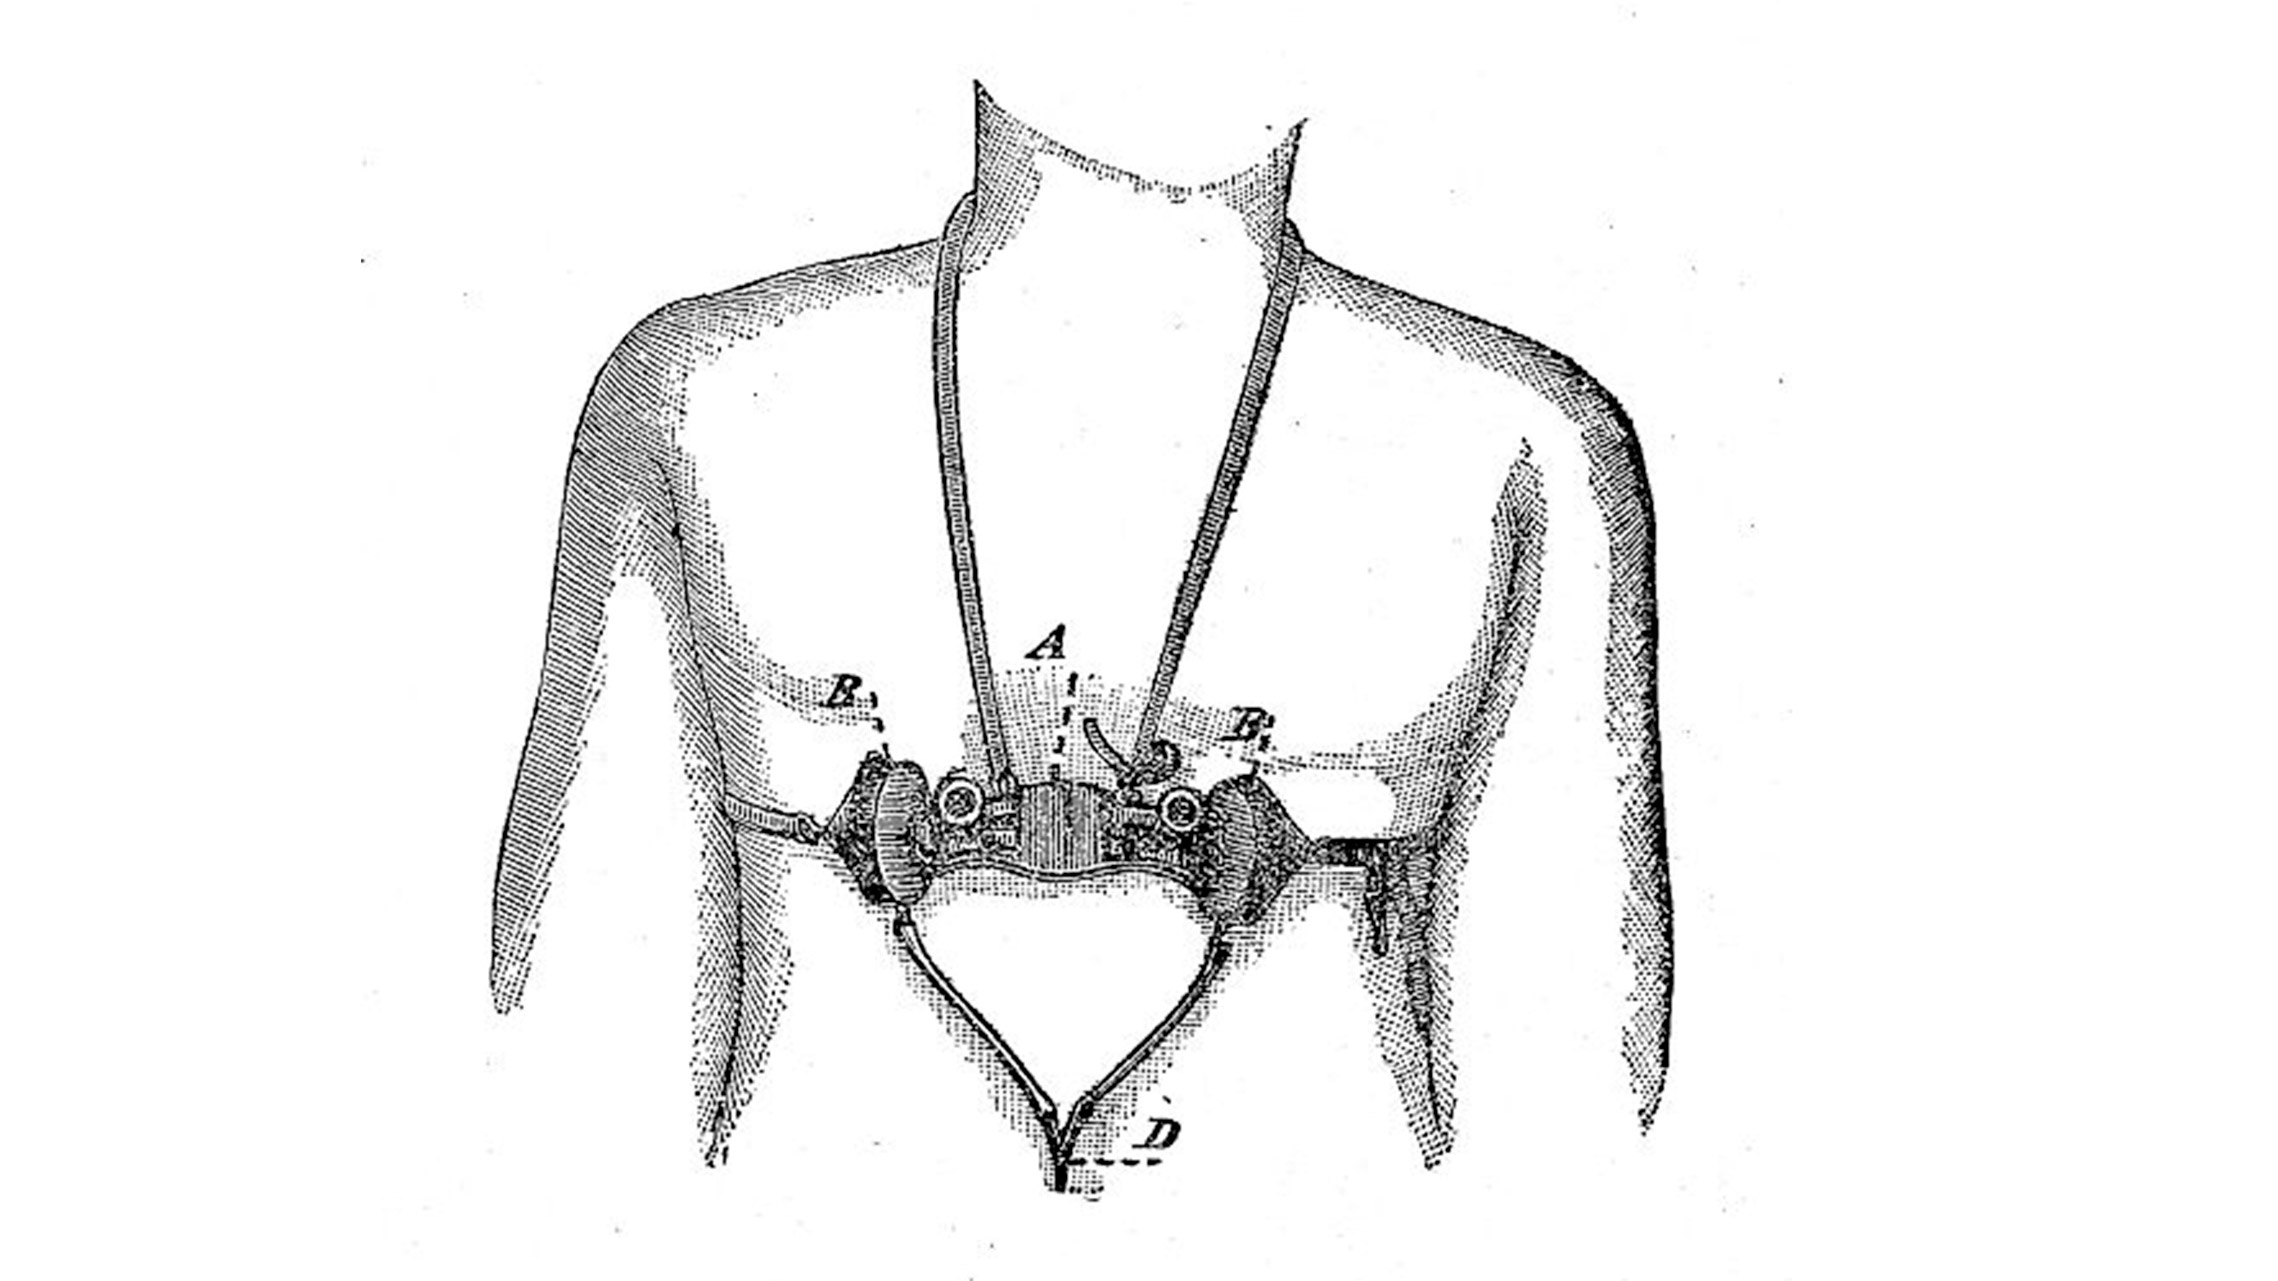 The drawing shows an analog device that is fixed on the chest of an individual via some straps around the neck and around the chest. The device seems to have some mechanical parts. And the drawing is using letters from A to D to legend these different functional parts. A pneumograph, also known as a pneumatograph or spirograph, is a device for recording velocity and force of chest movements during respiration. The device was primarily used as a lie detector.